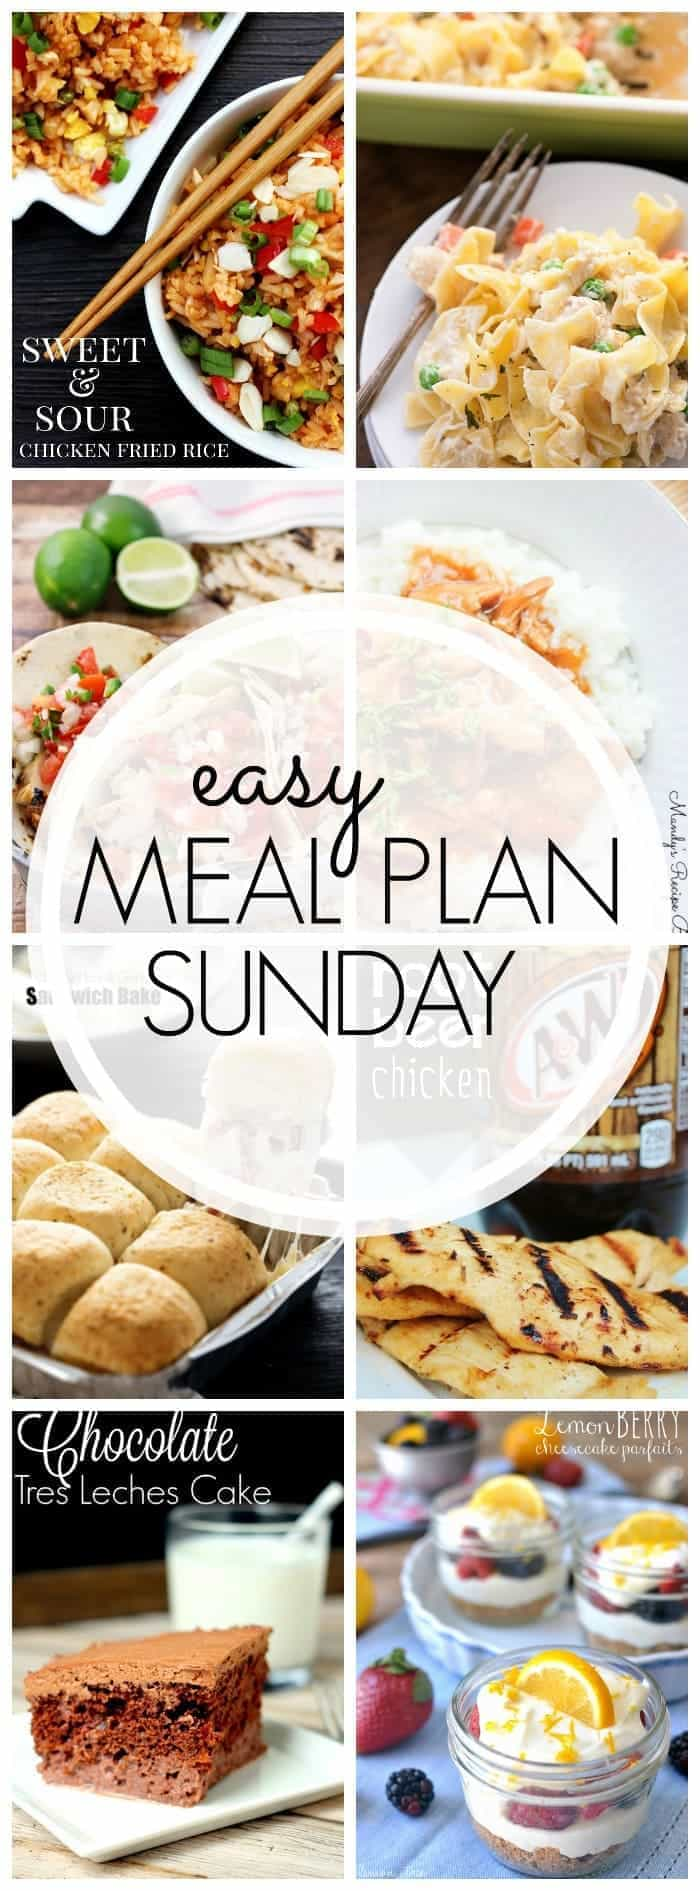 Everything you need for EASY meal planning! 6 dinners, 1 breakfast, and 2 desserts....guaranteed to make your week easy & delicious!